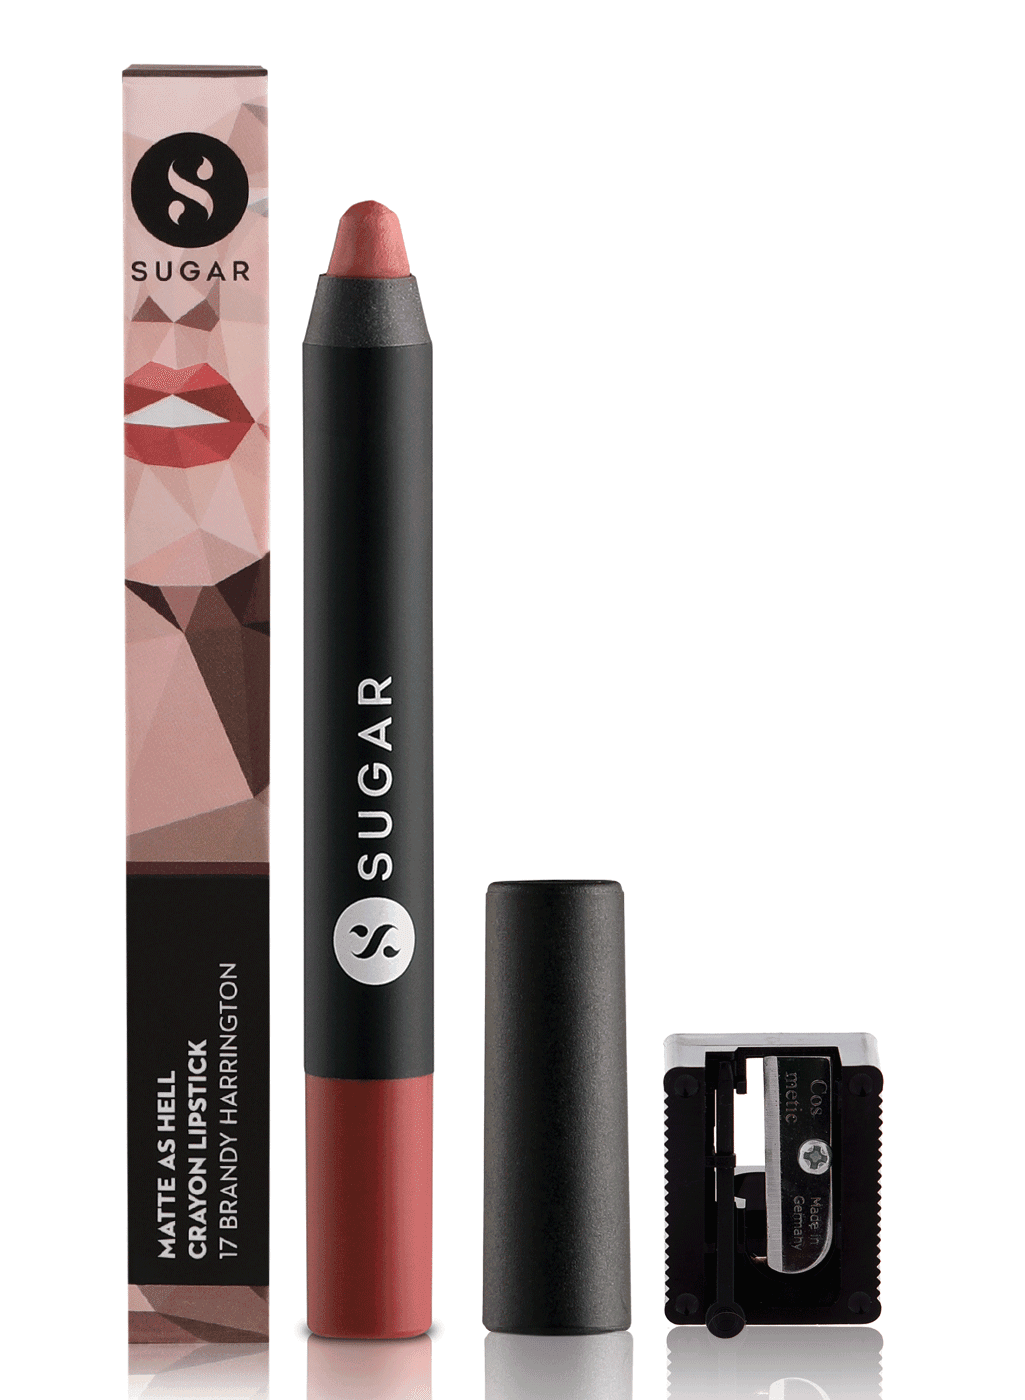 SUGAR Matte As Hell Crayon Lipstick - 17 Brandy Harrington (Rusty Reddish Pink)